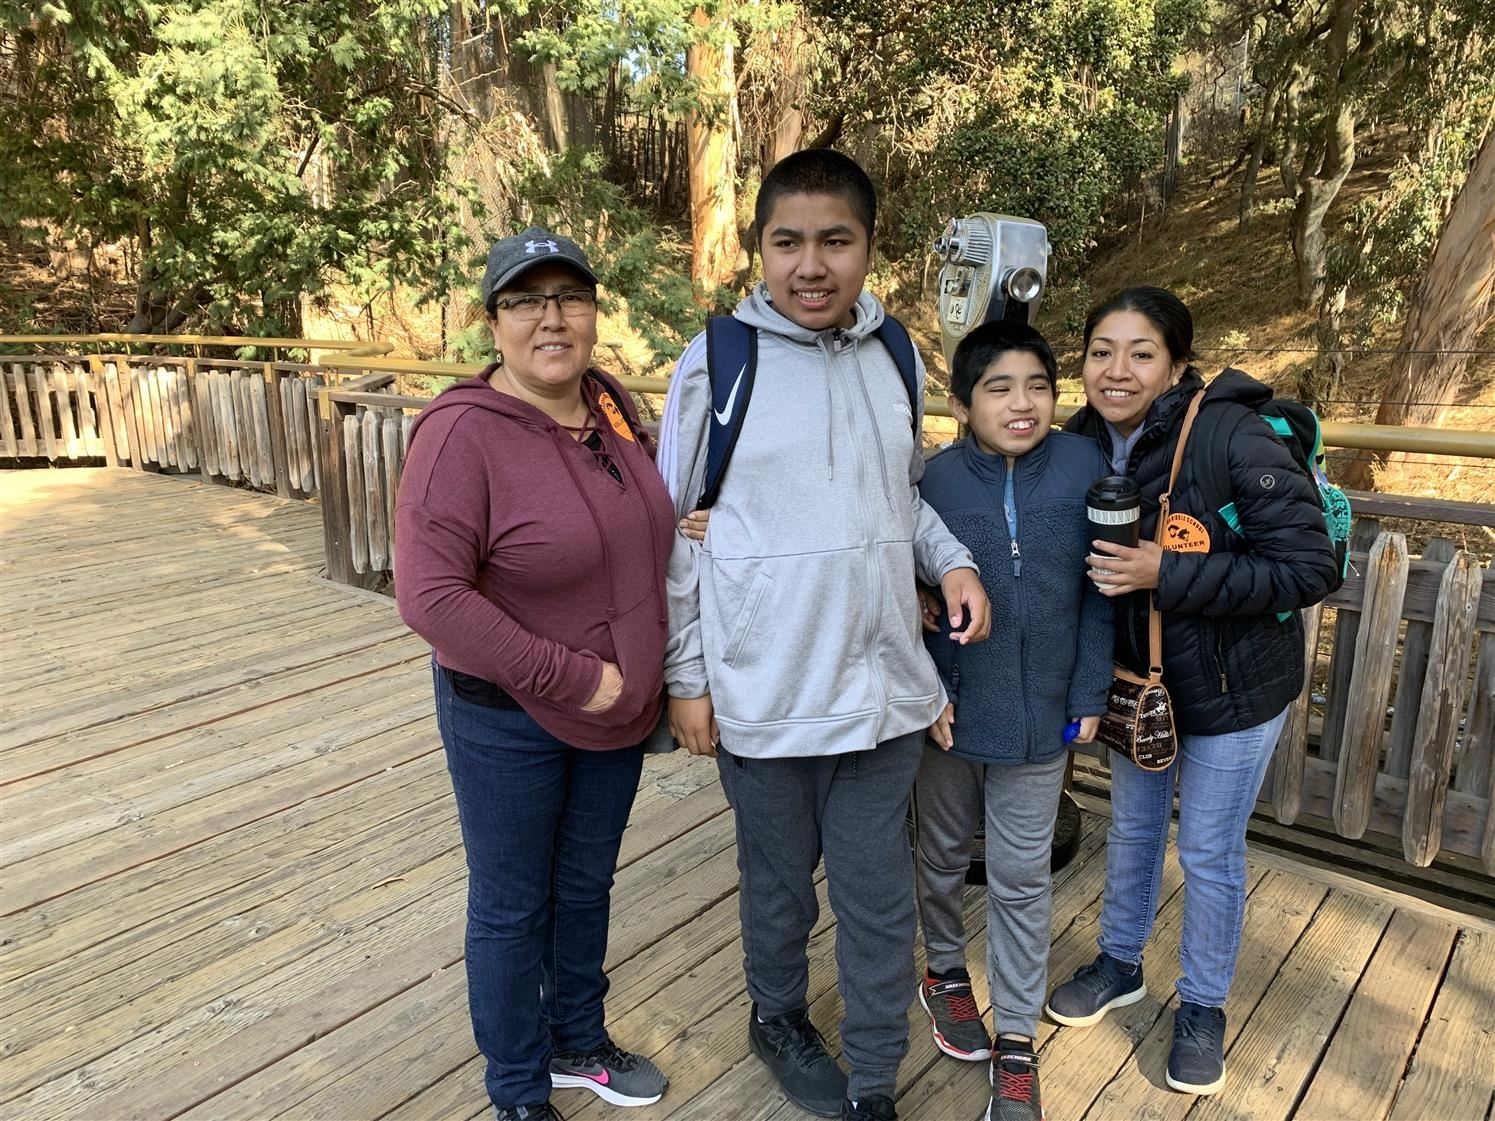 Students visit the Oakland zoo